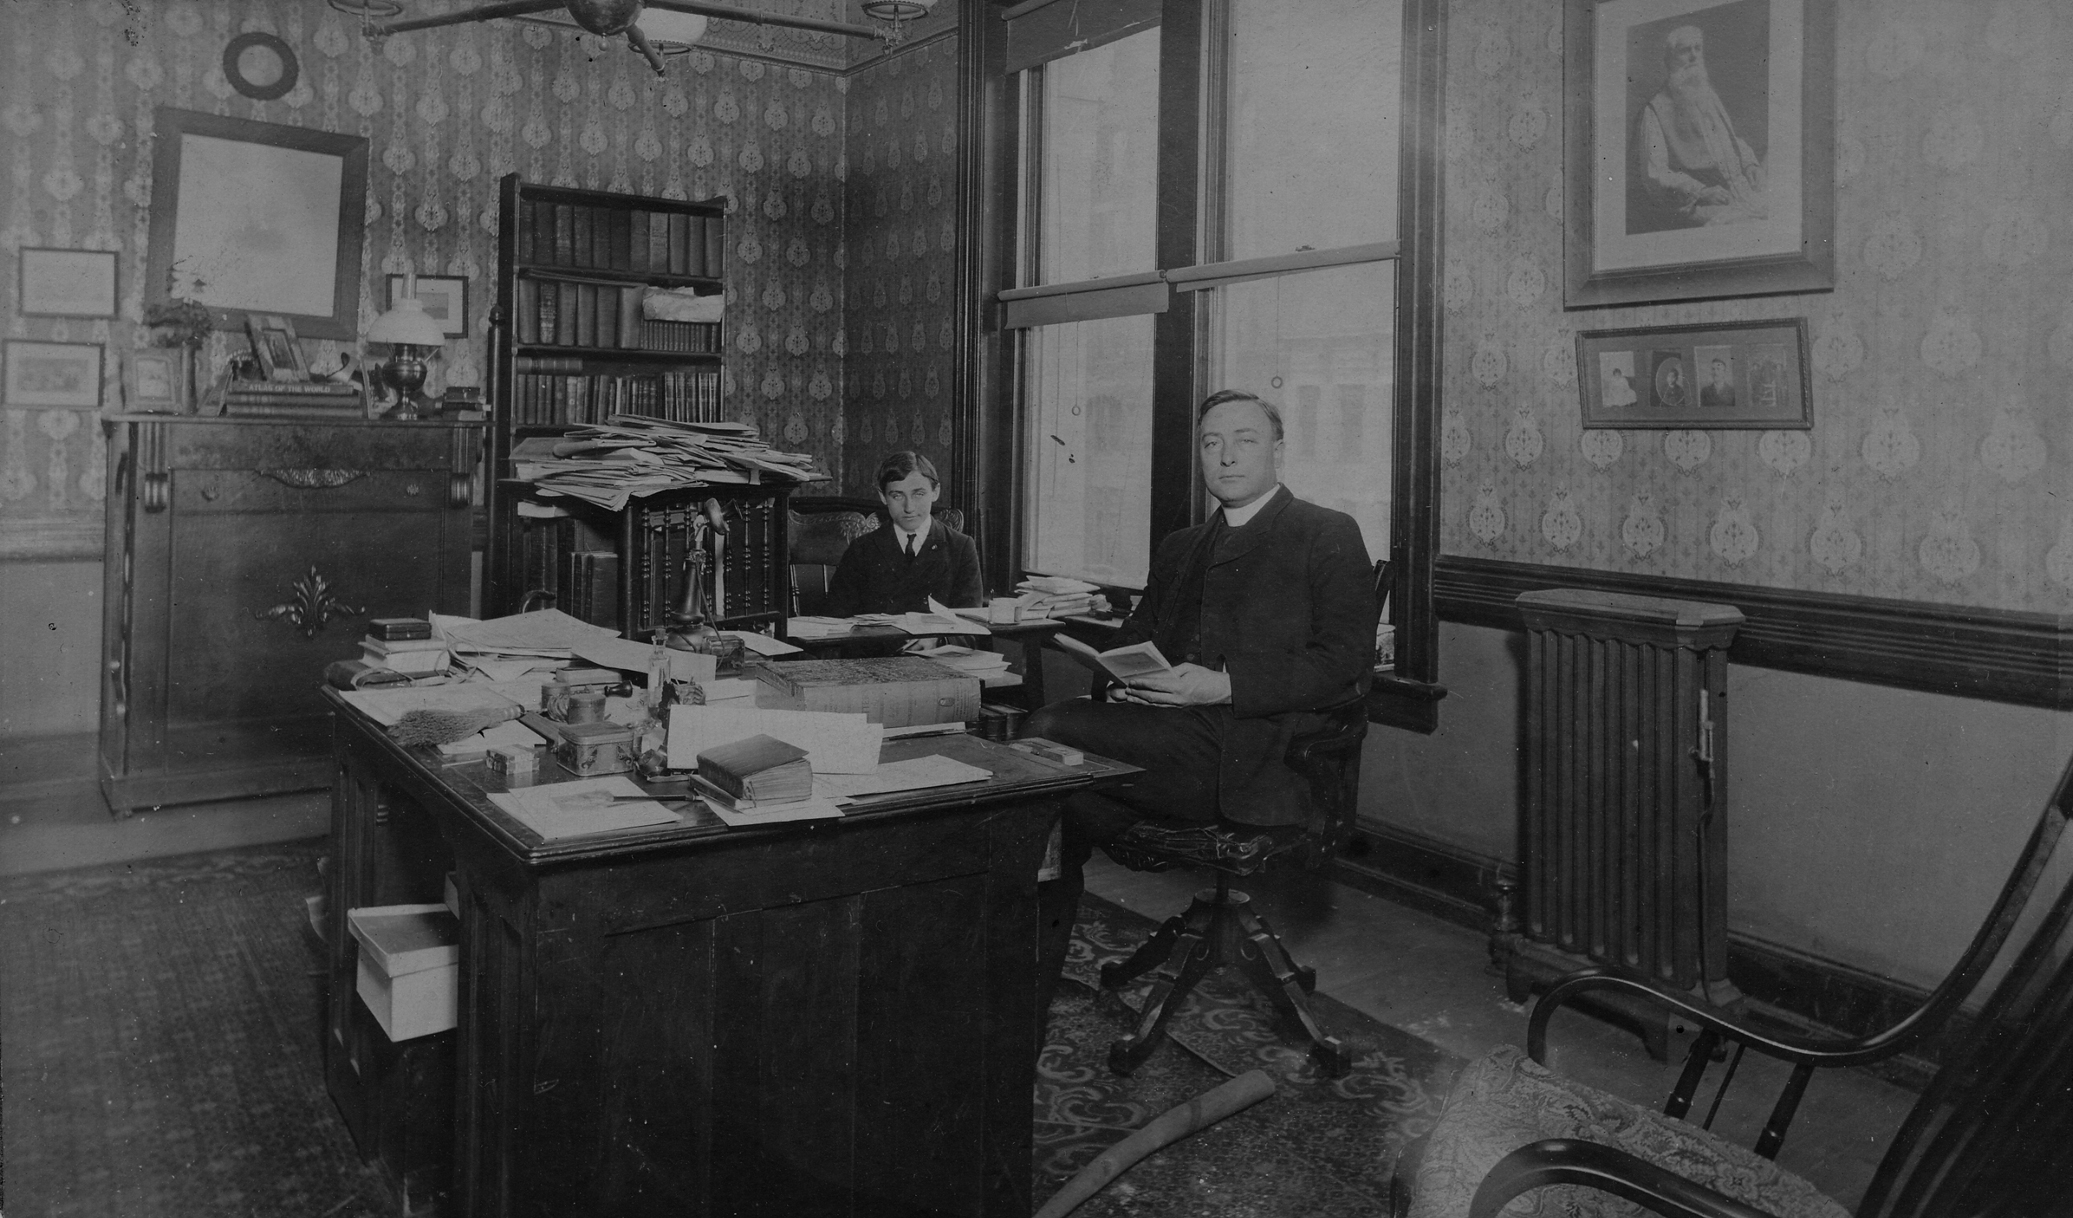 Monsignor William Henry Ketcham with his adopted son Tom (Choctaw), in his office at the Bureau of Catholic Indian Missions